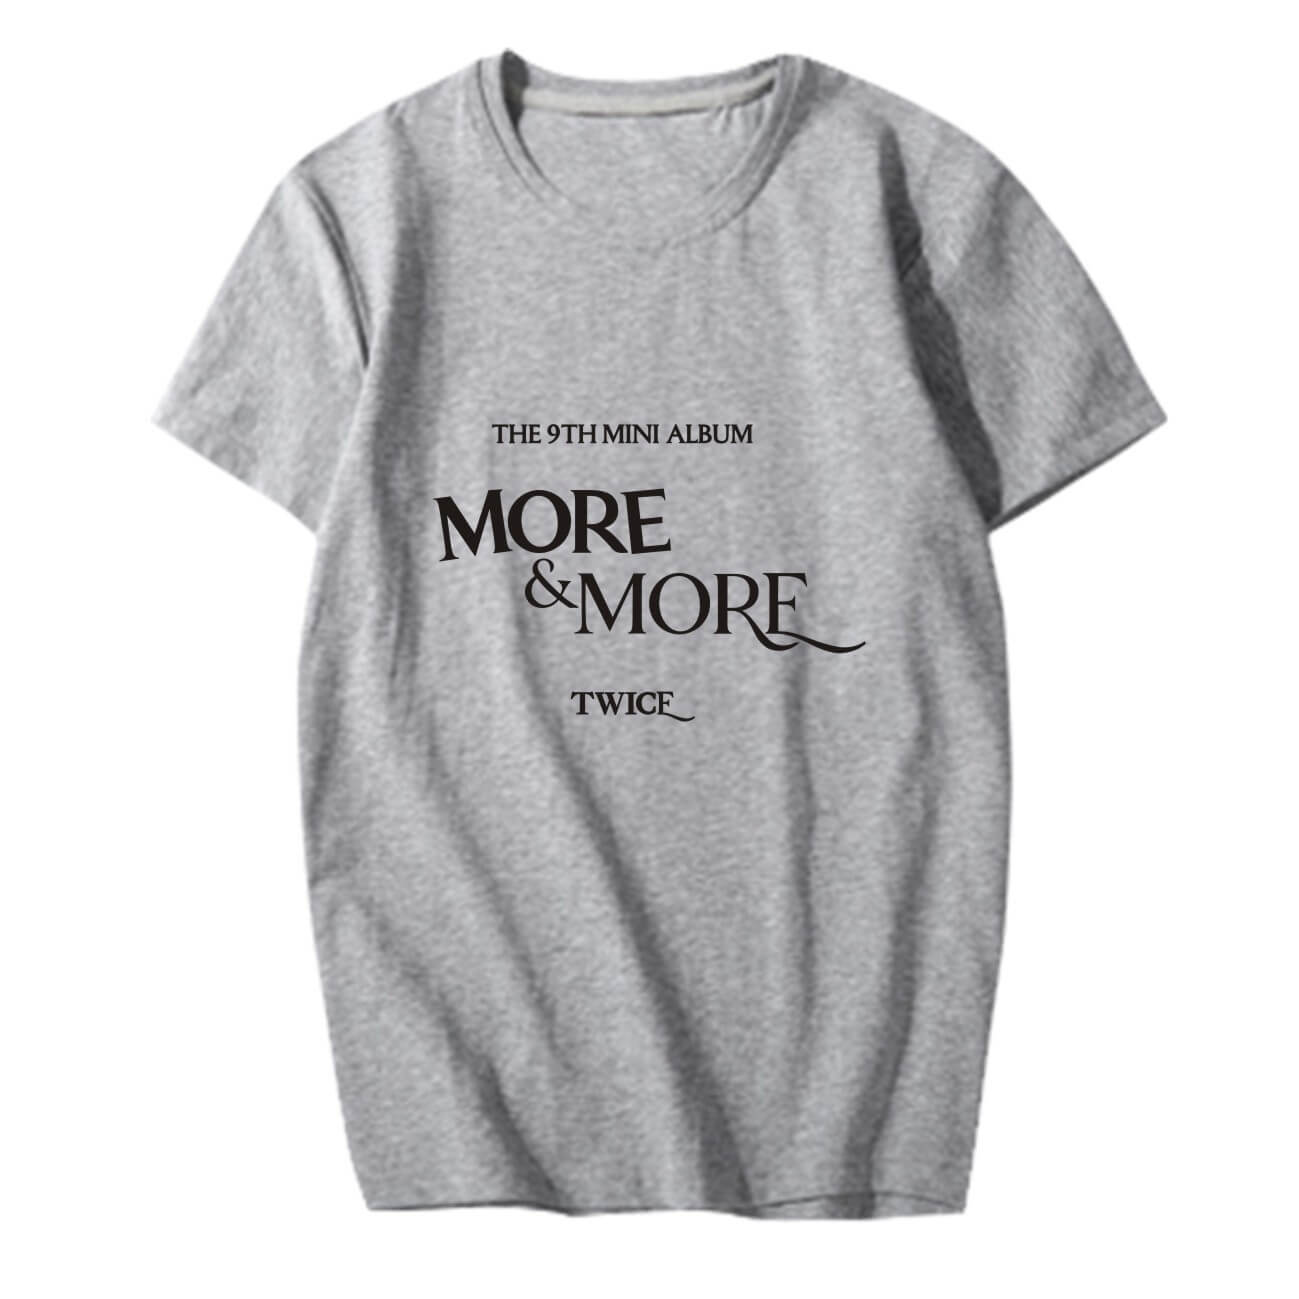 TWICE MORE & MORE Concert Printed Loose T-shirt